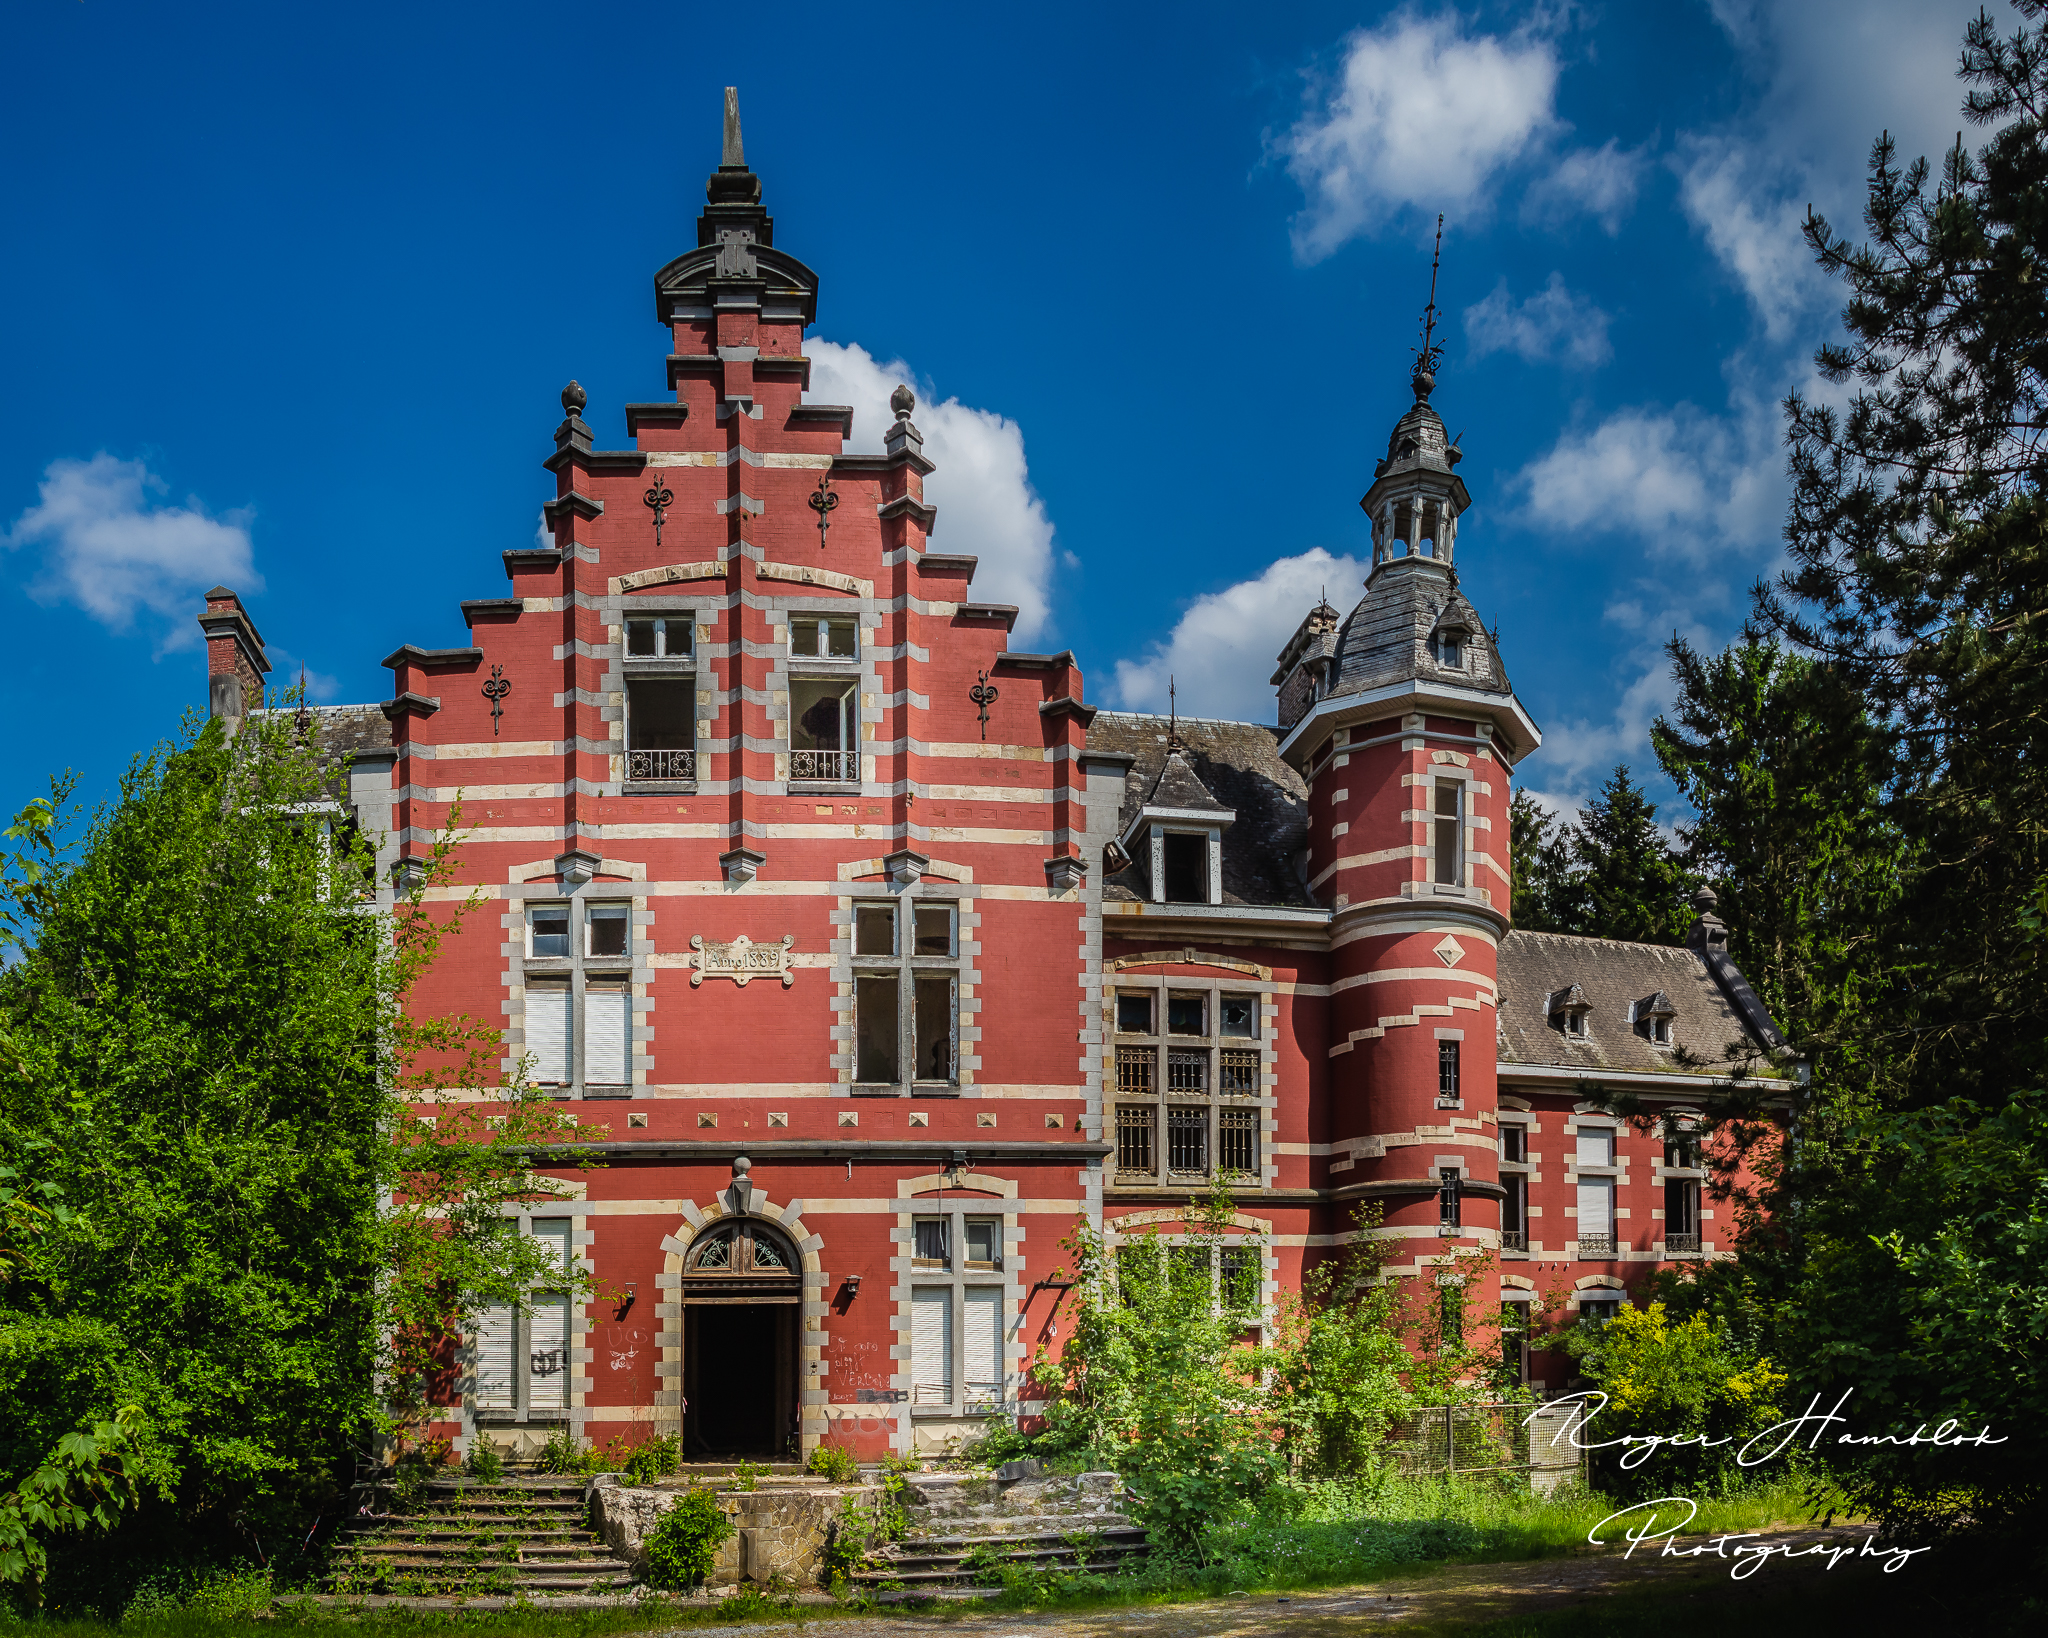 Chateau Rouge / the Red Castle, Belgium